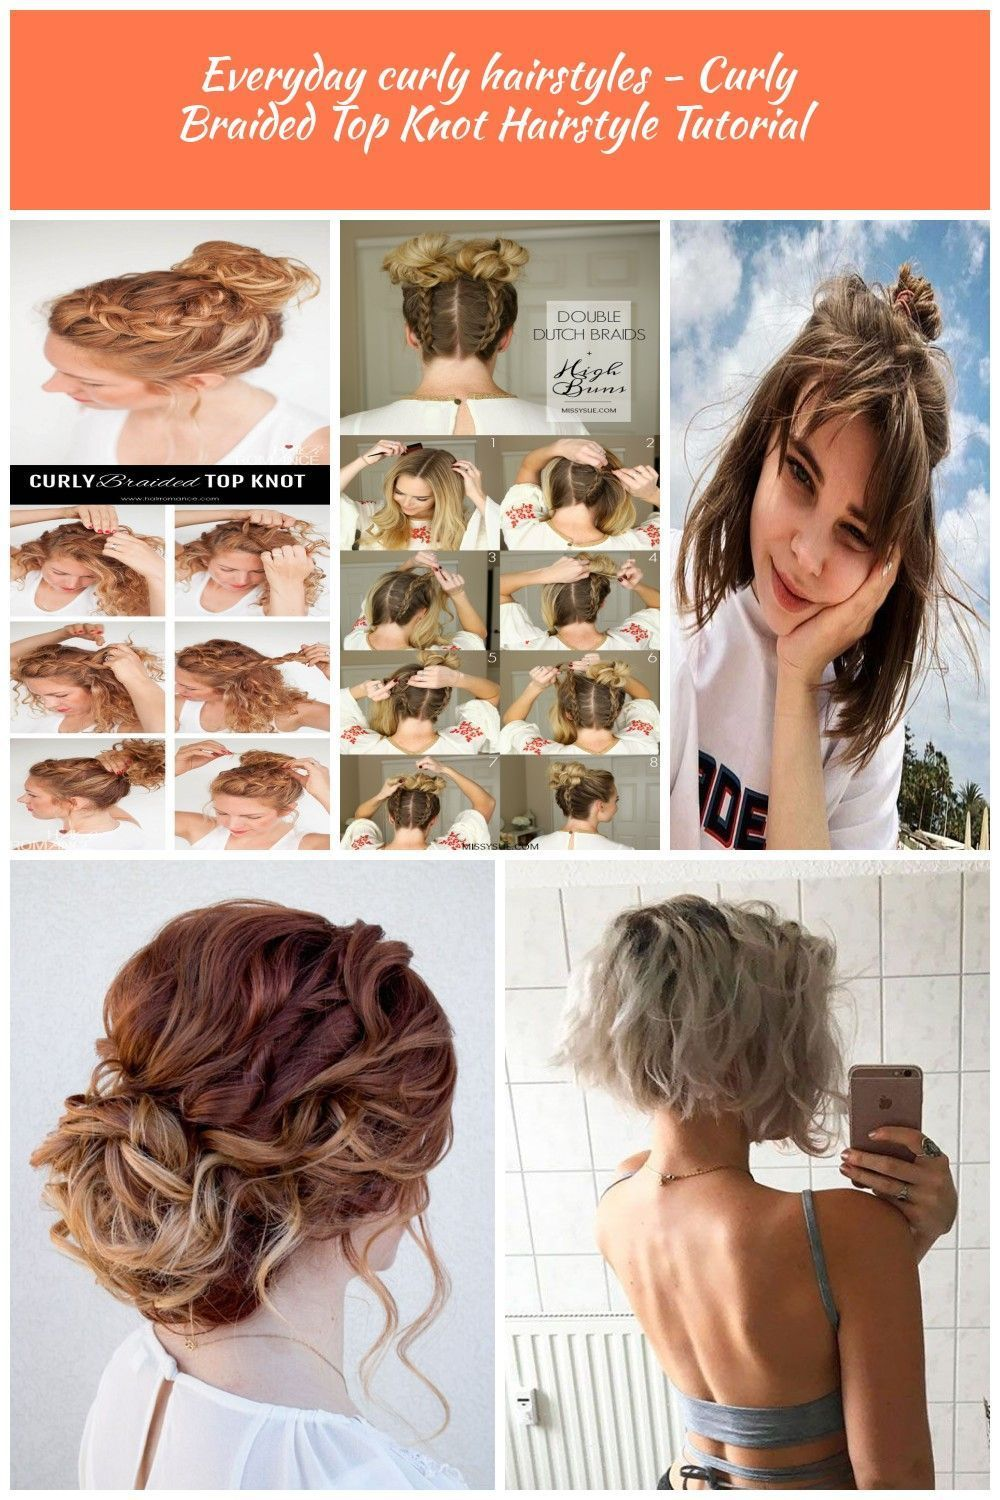 Everyday Curly Hairstyles Curly Braided Top Knot Hairstyle Tutorial Curly Hair Styles Everyd Curly Hair Styles Braided Top Knot Hairstyle Top Knot Hairstyles